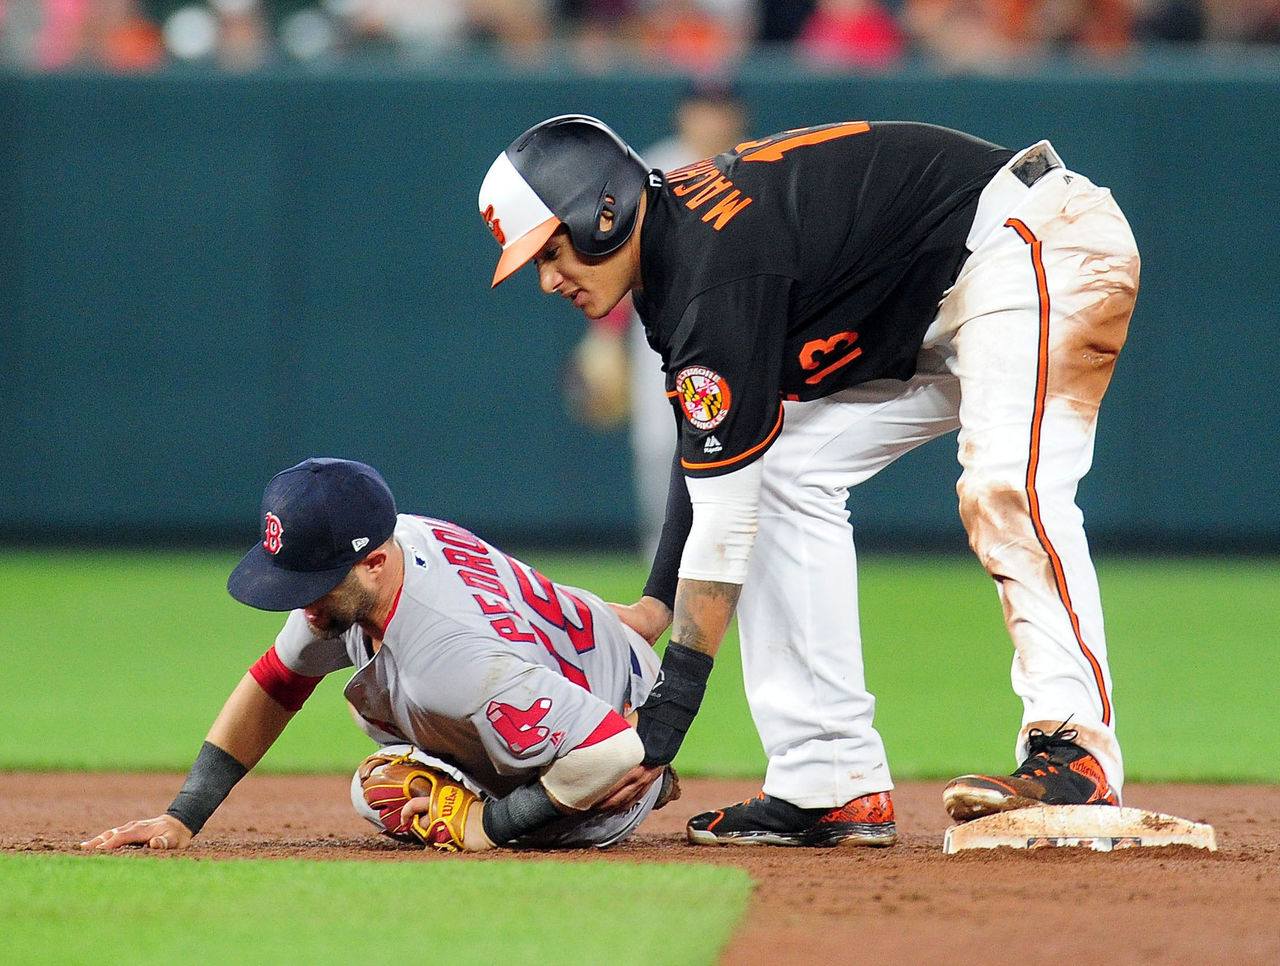 Cropped 2017 04 22t030619z 1447442184 nocid rtrmadp 3 mlb boston red sox at baltimore orioles